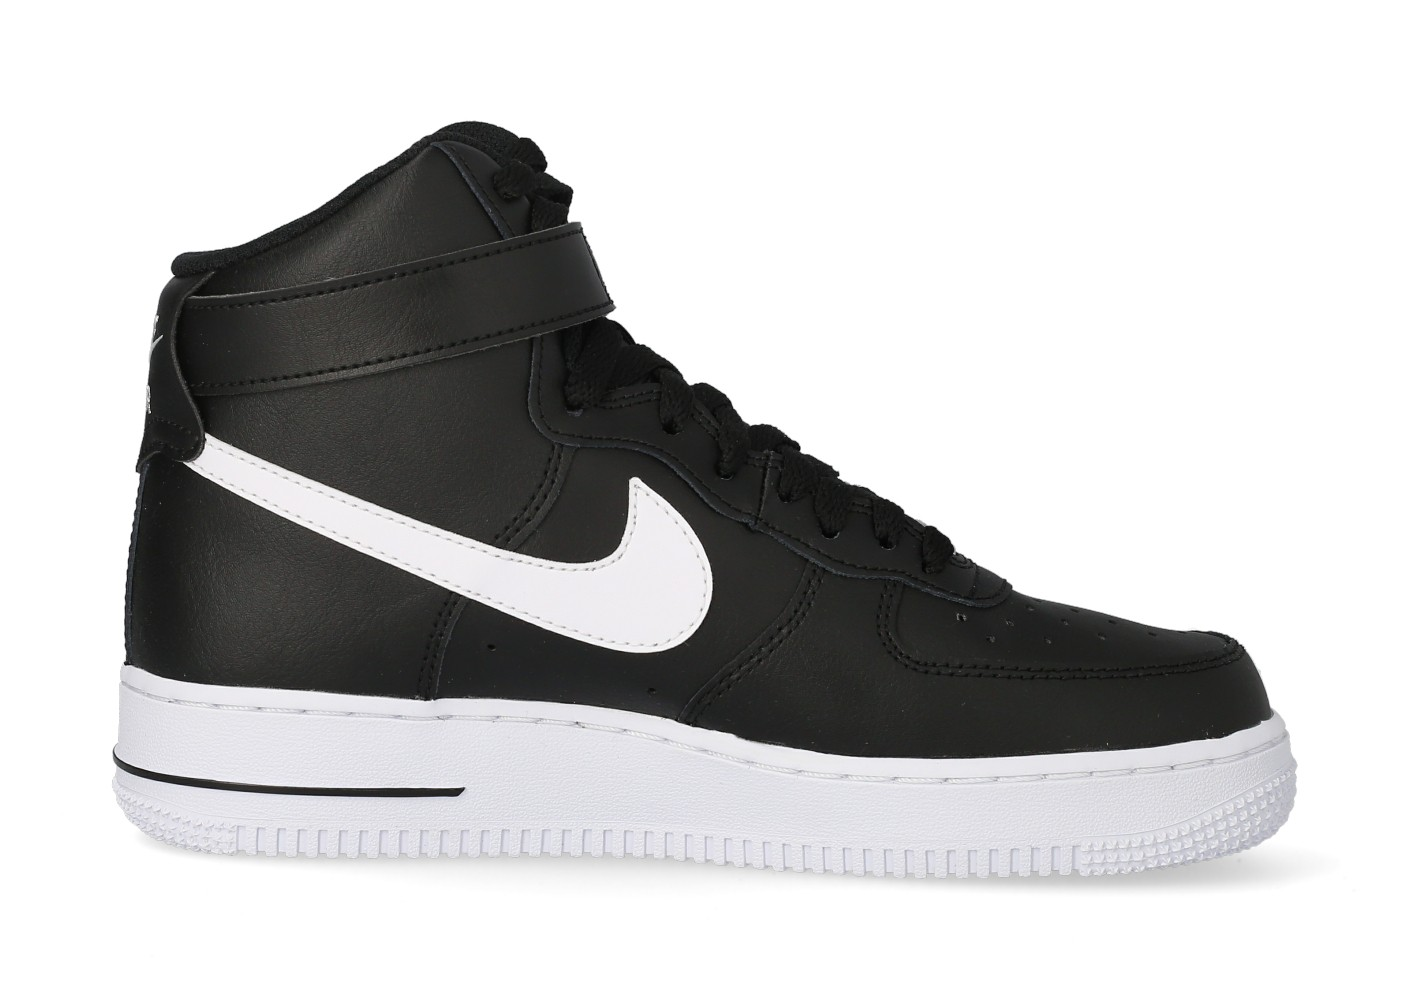 Nike Air Force 1 High '07 noire et blanche - Chaussures Baskets ...